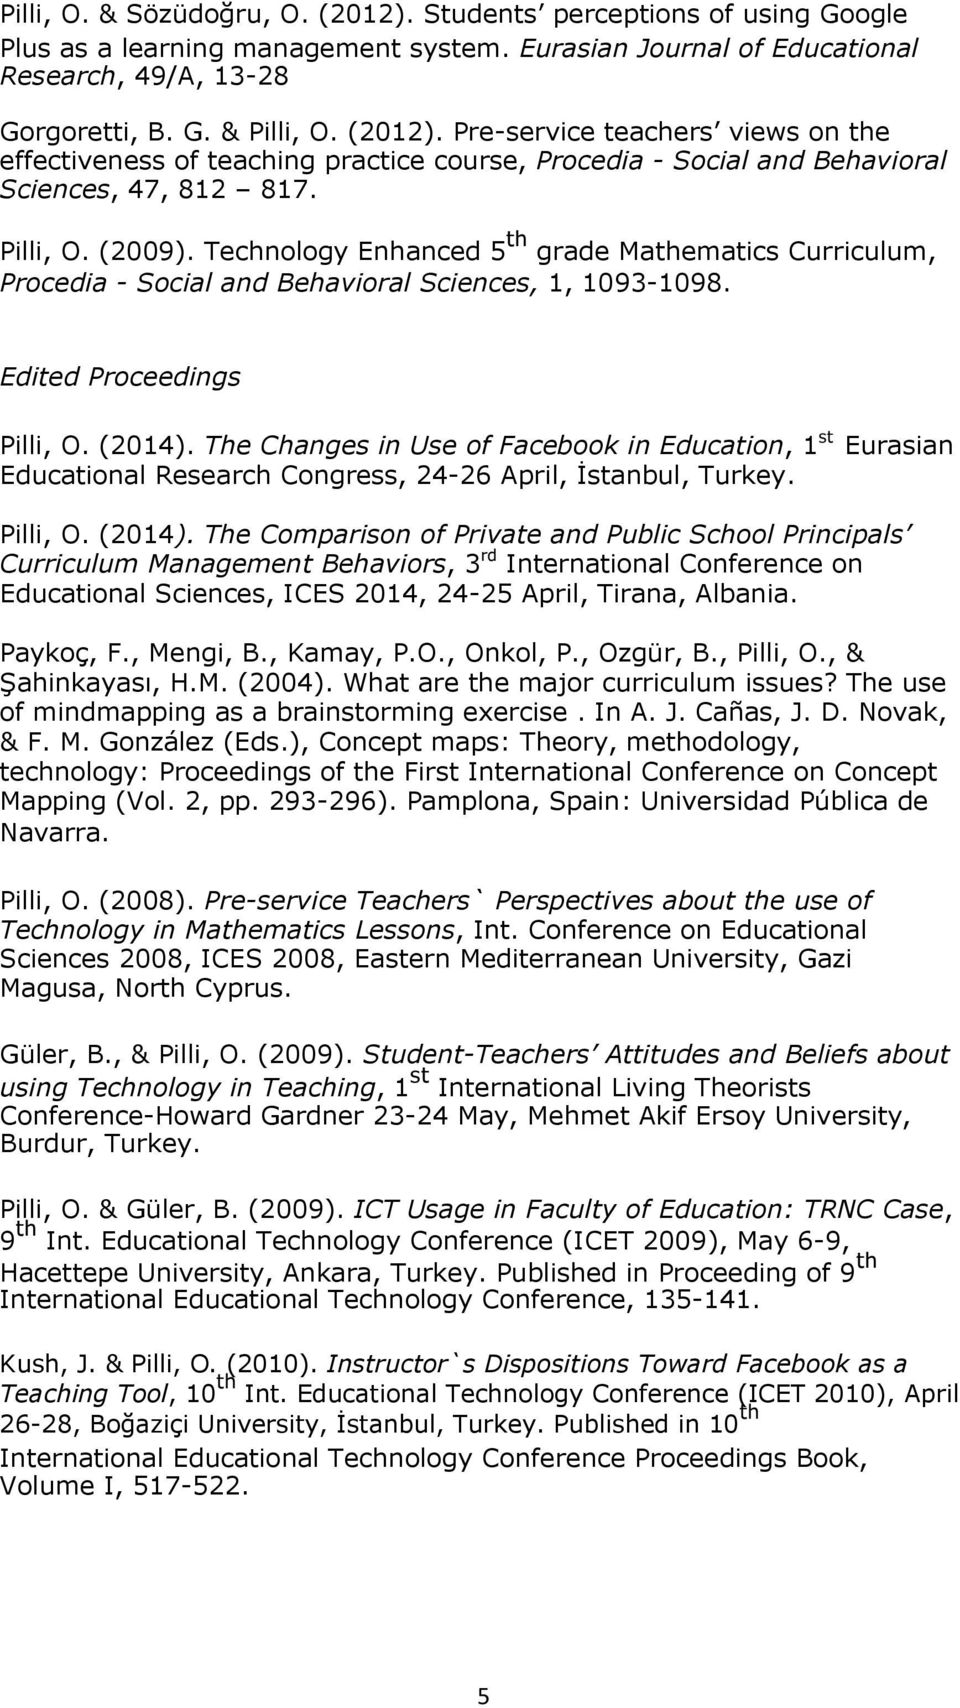 The Changes in Use of Facebook in Education, 1 st Eurasian Educational Research Congress, 24-26 April, İstanbul, Turkey. Pilli, O. (2014).